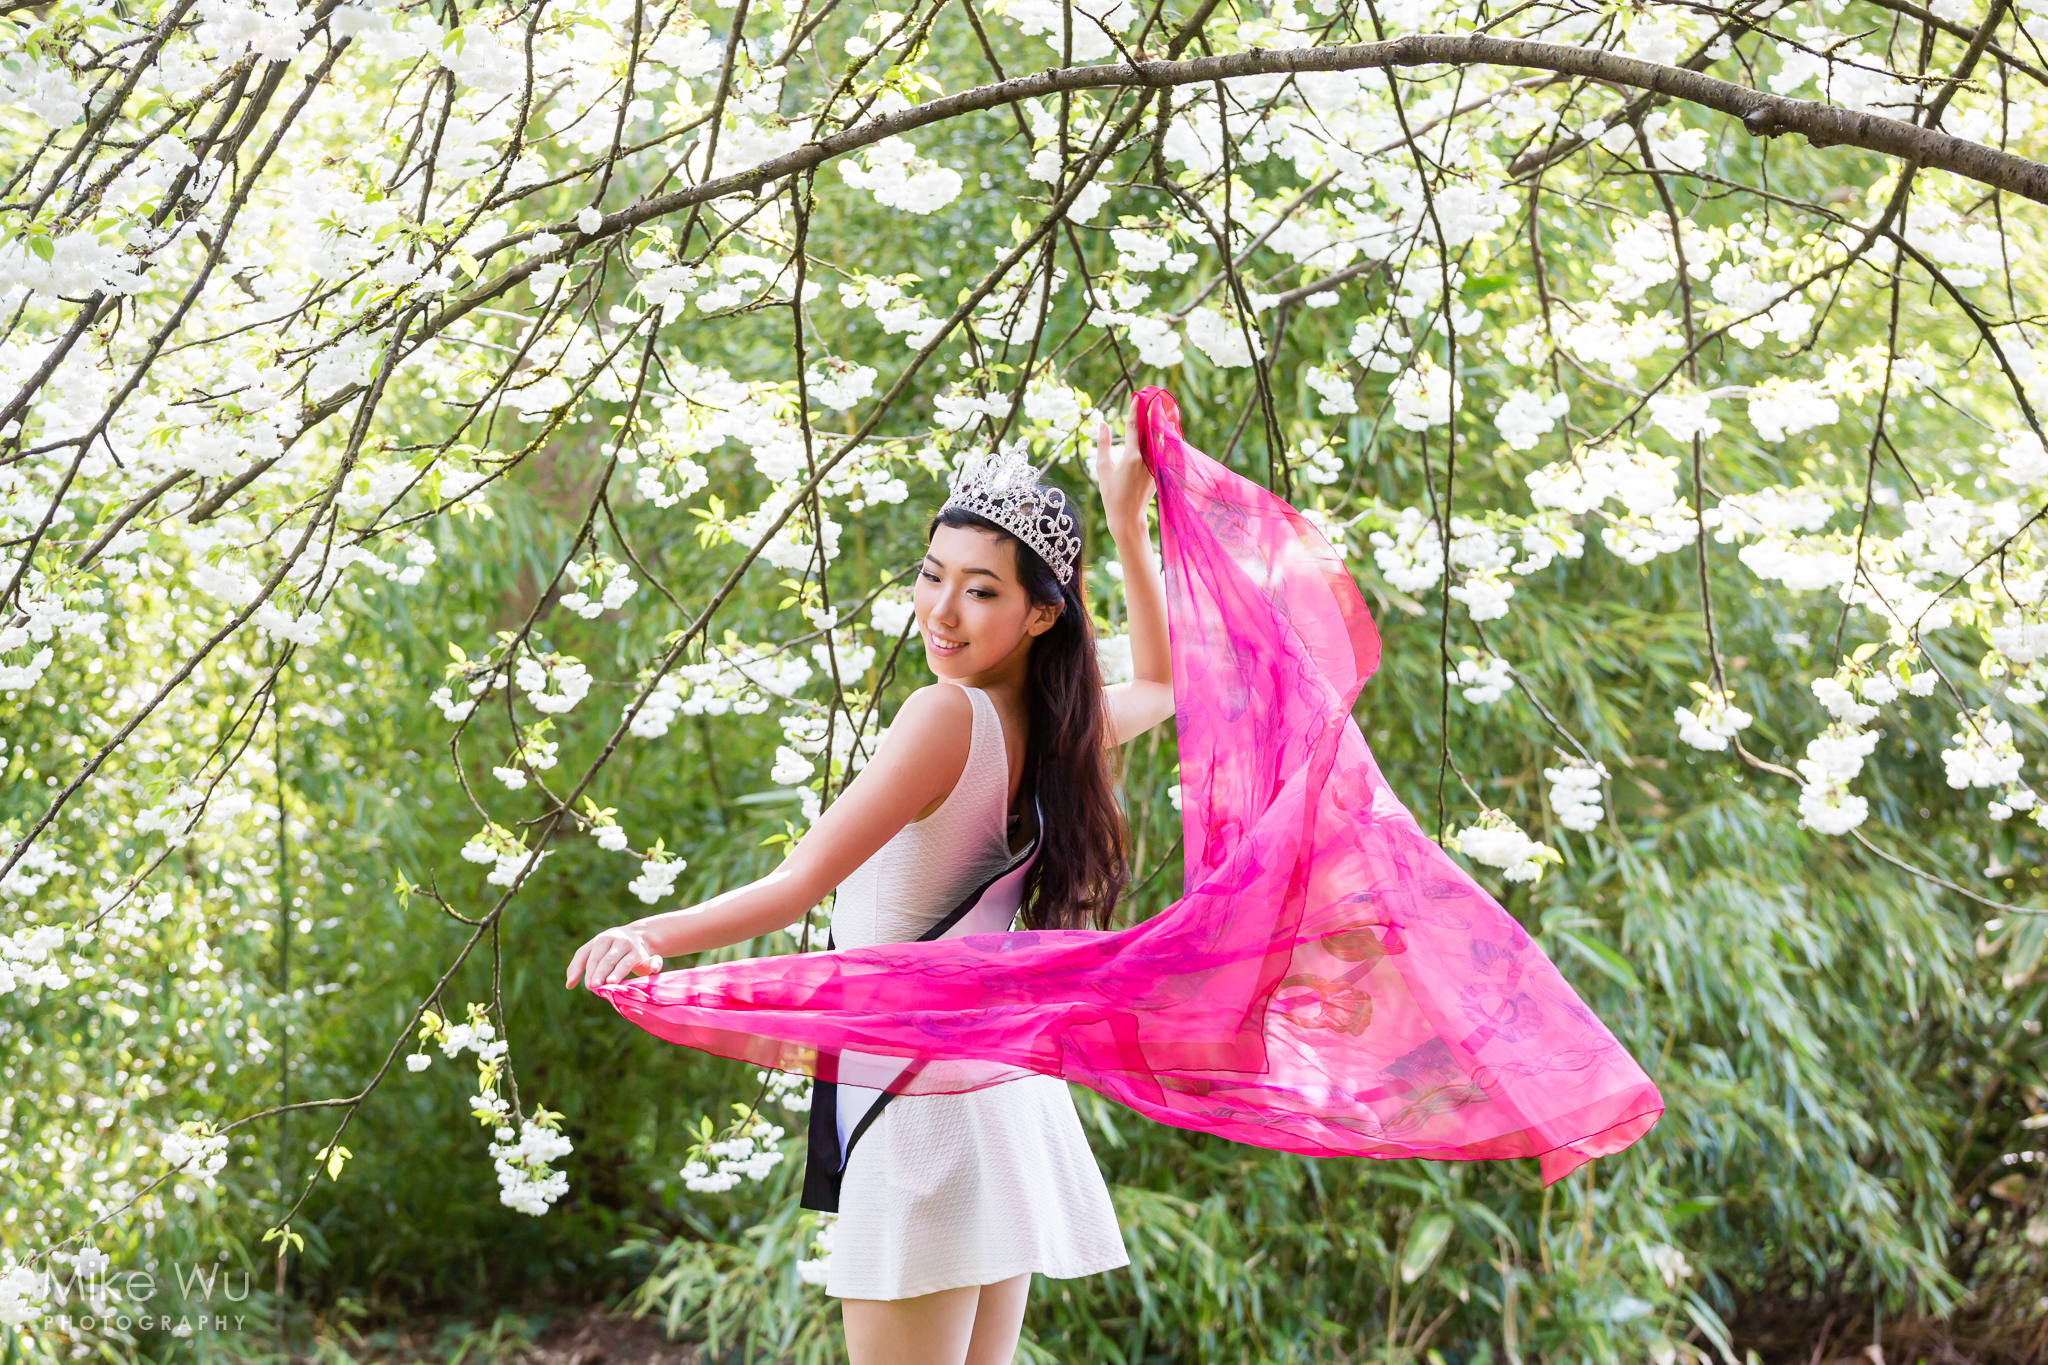 van dusen gardens, photoshoot, flowers, cherry blossoms, scarf, pink, crown, miss teenage bc, winner, white dress, green foilage, nature, environment, beauty